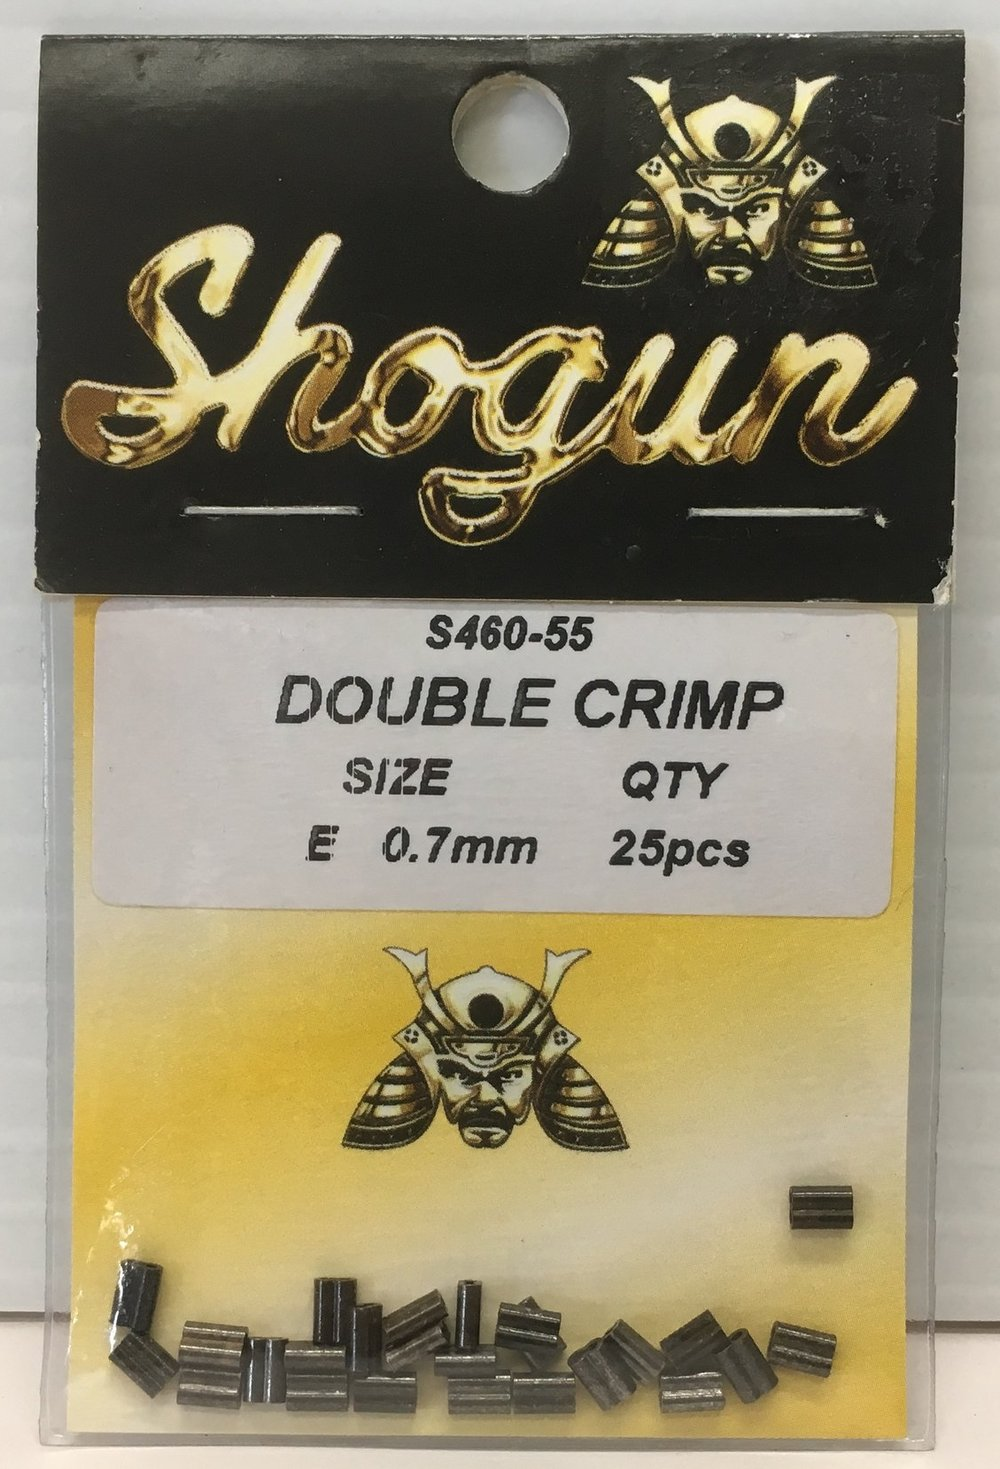 Shogun Double crimp